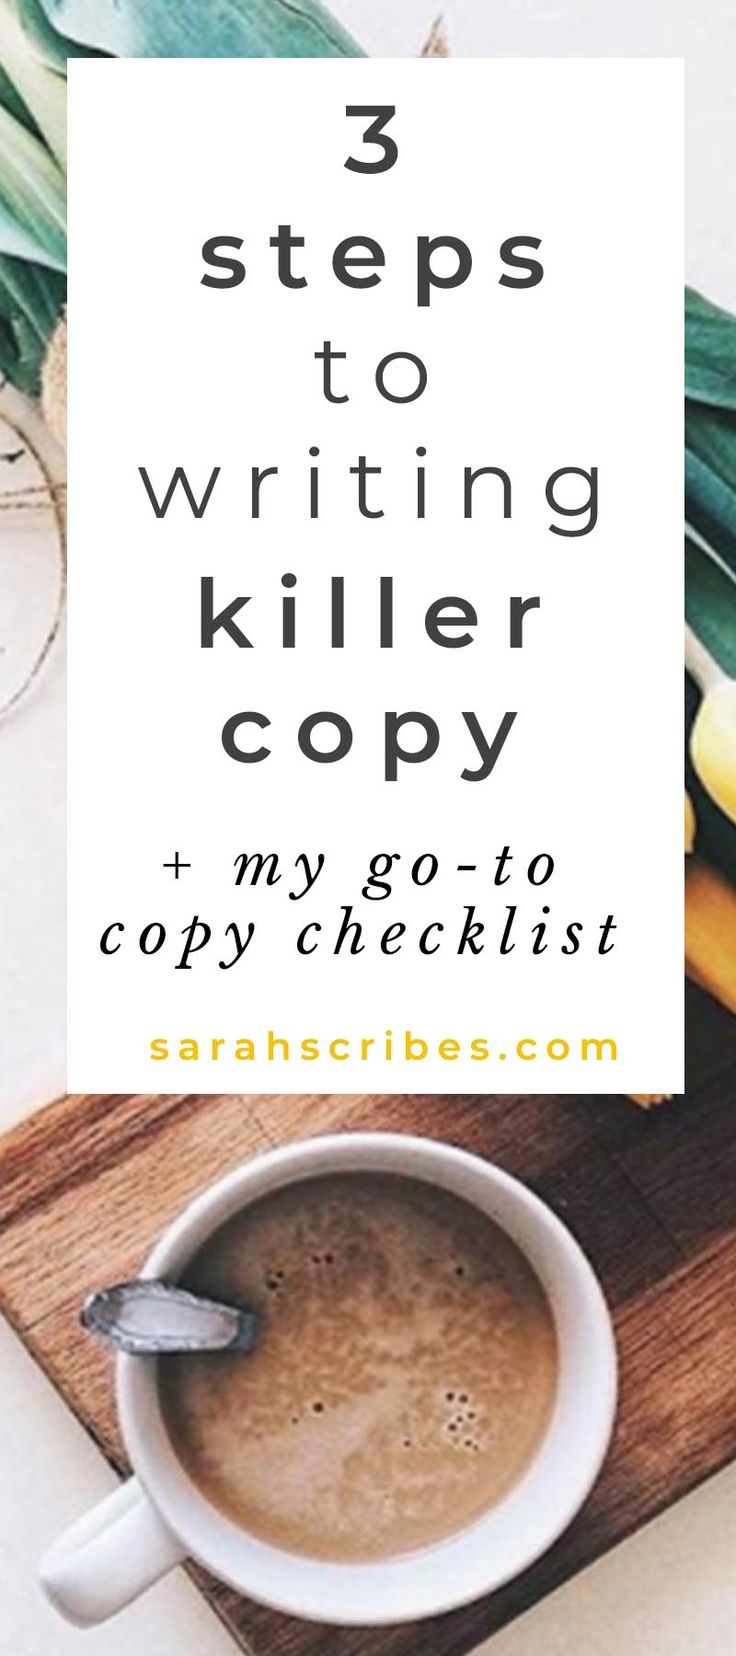 Best Copywriting Tips| Business Tips | Branding | Blogging Tips | Blog | Sarah Louise | Blog Ideas | Entrepreneur | Quotes | Fashion | Prompts   #copywriting #writing #prompts #branding